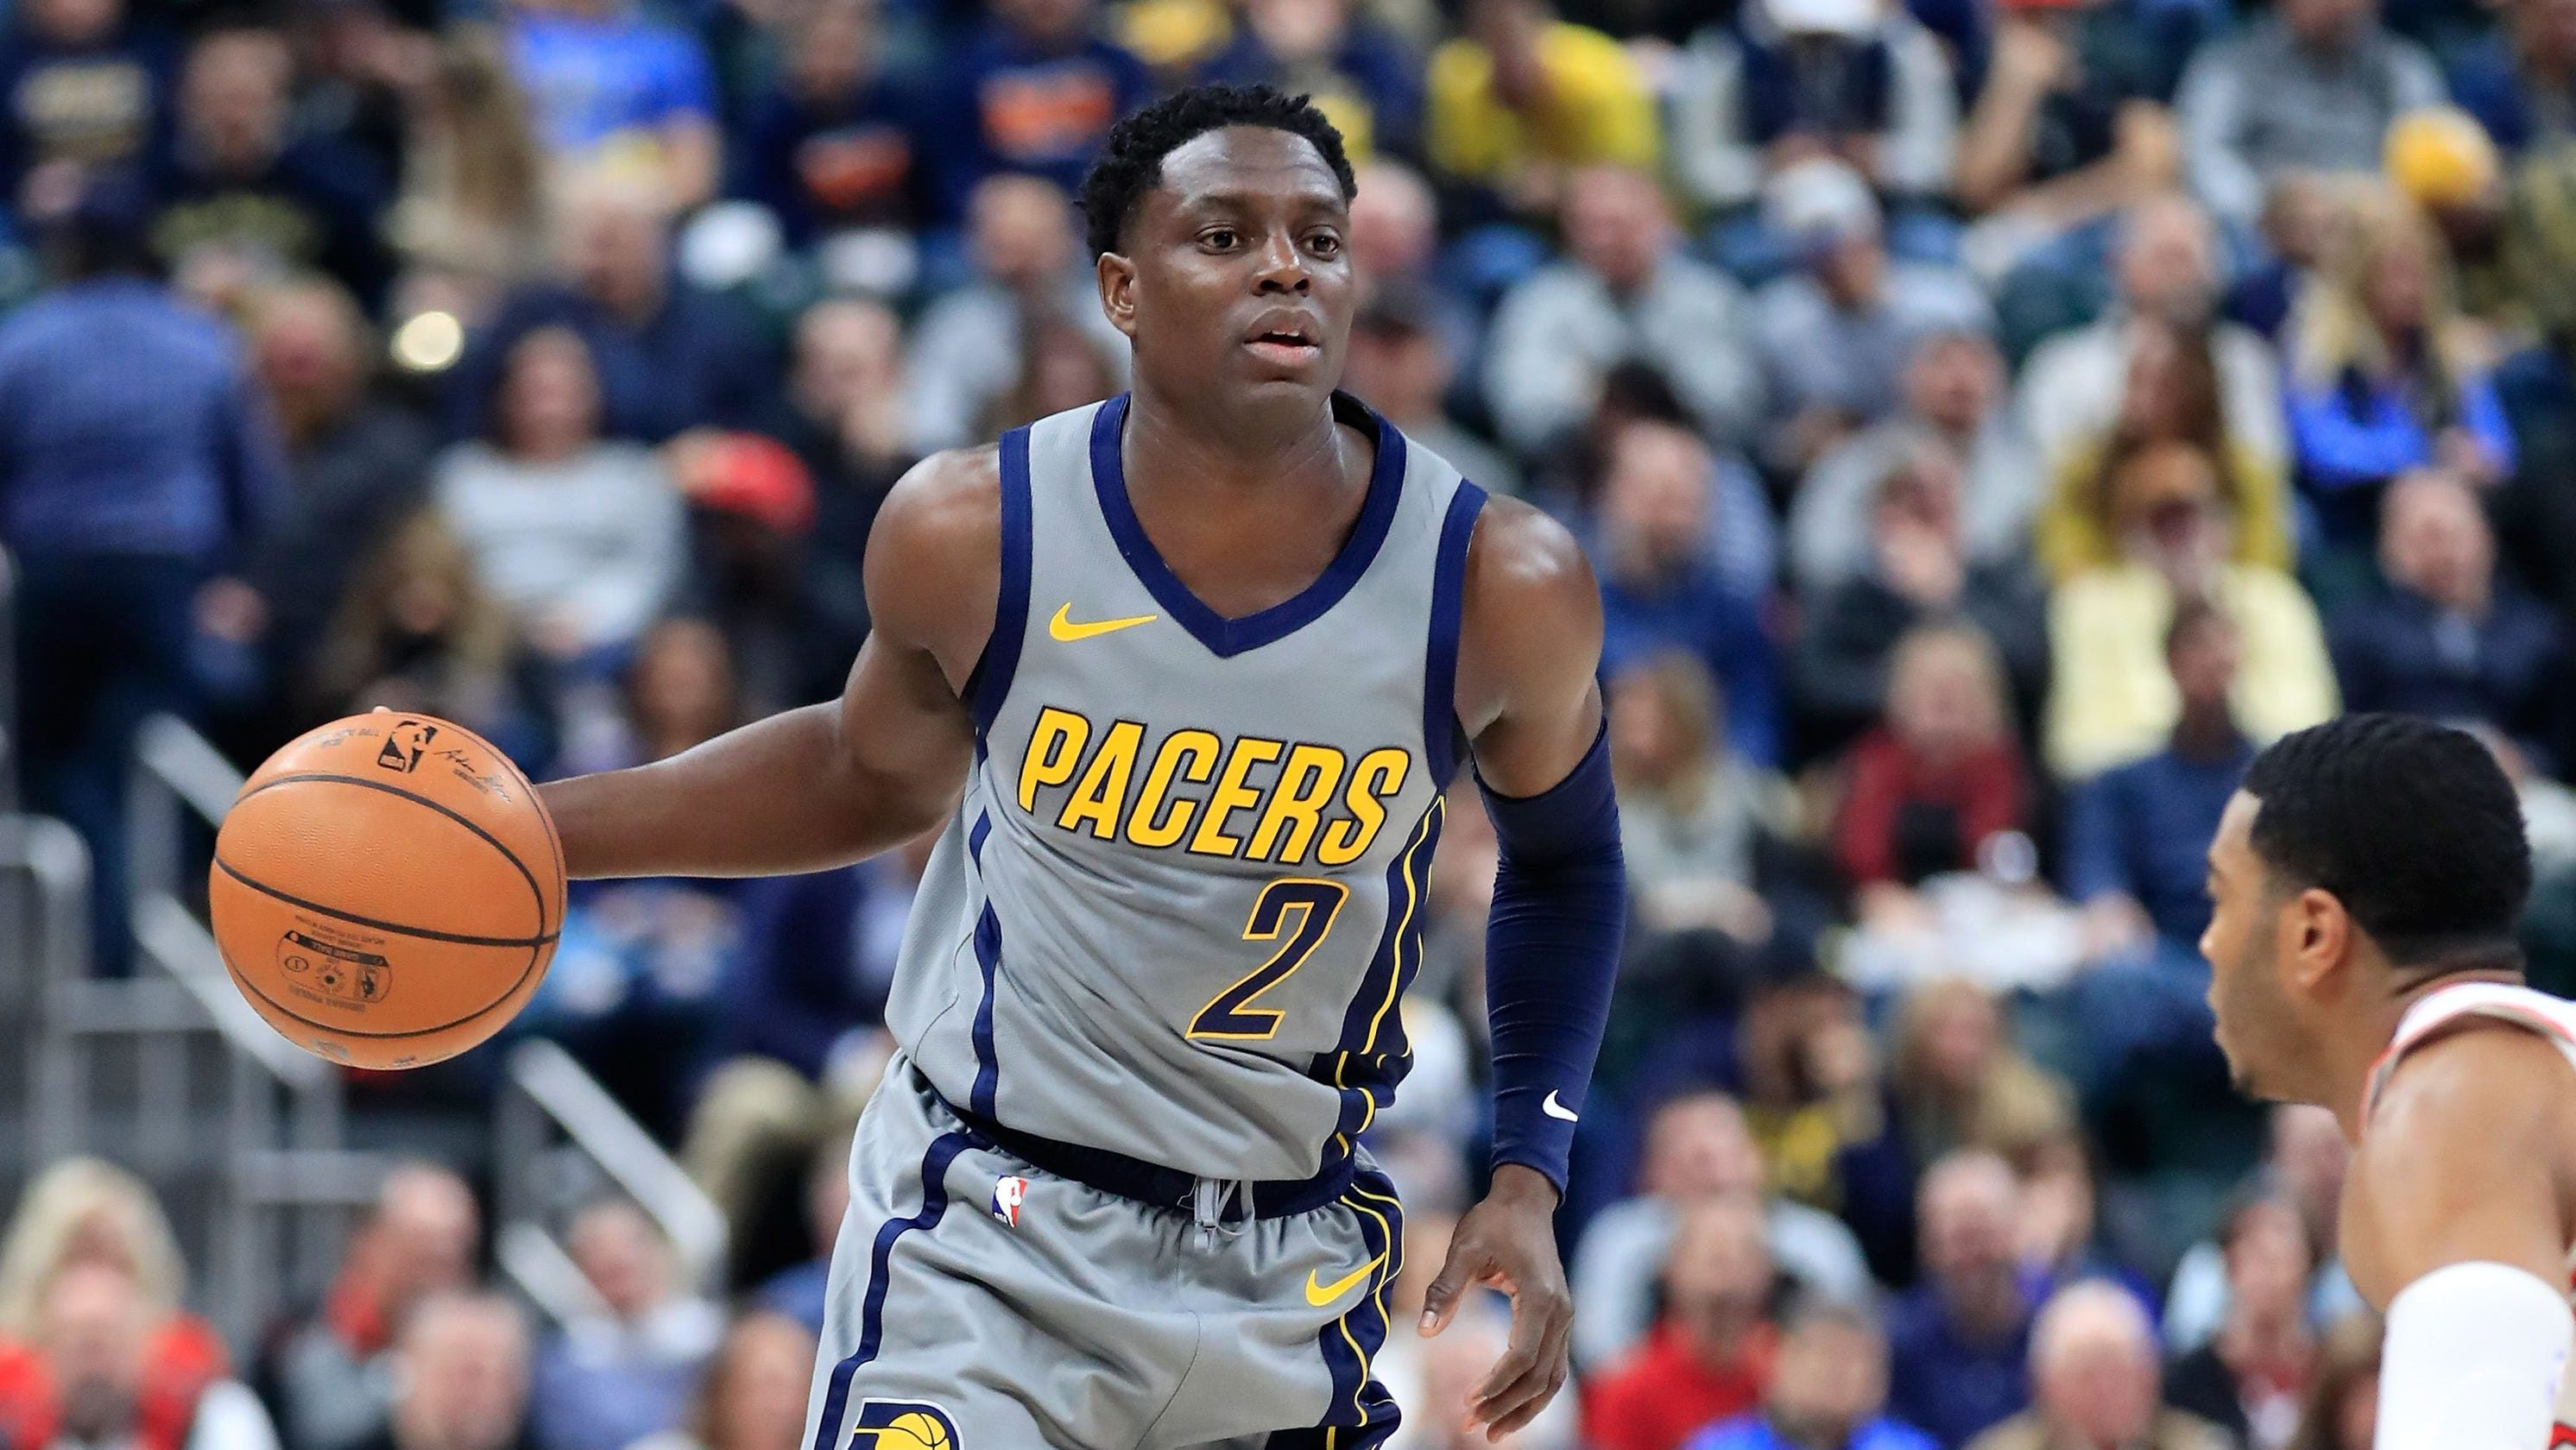 NBA Indiana Darren Collison replacement Pacers Cory Joseph Ricky Rubio Aaron Holiday